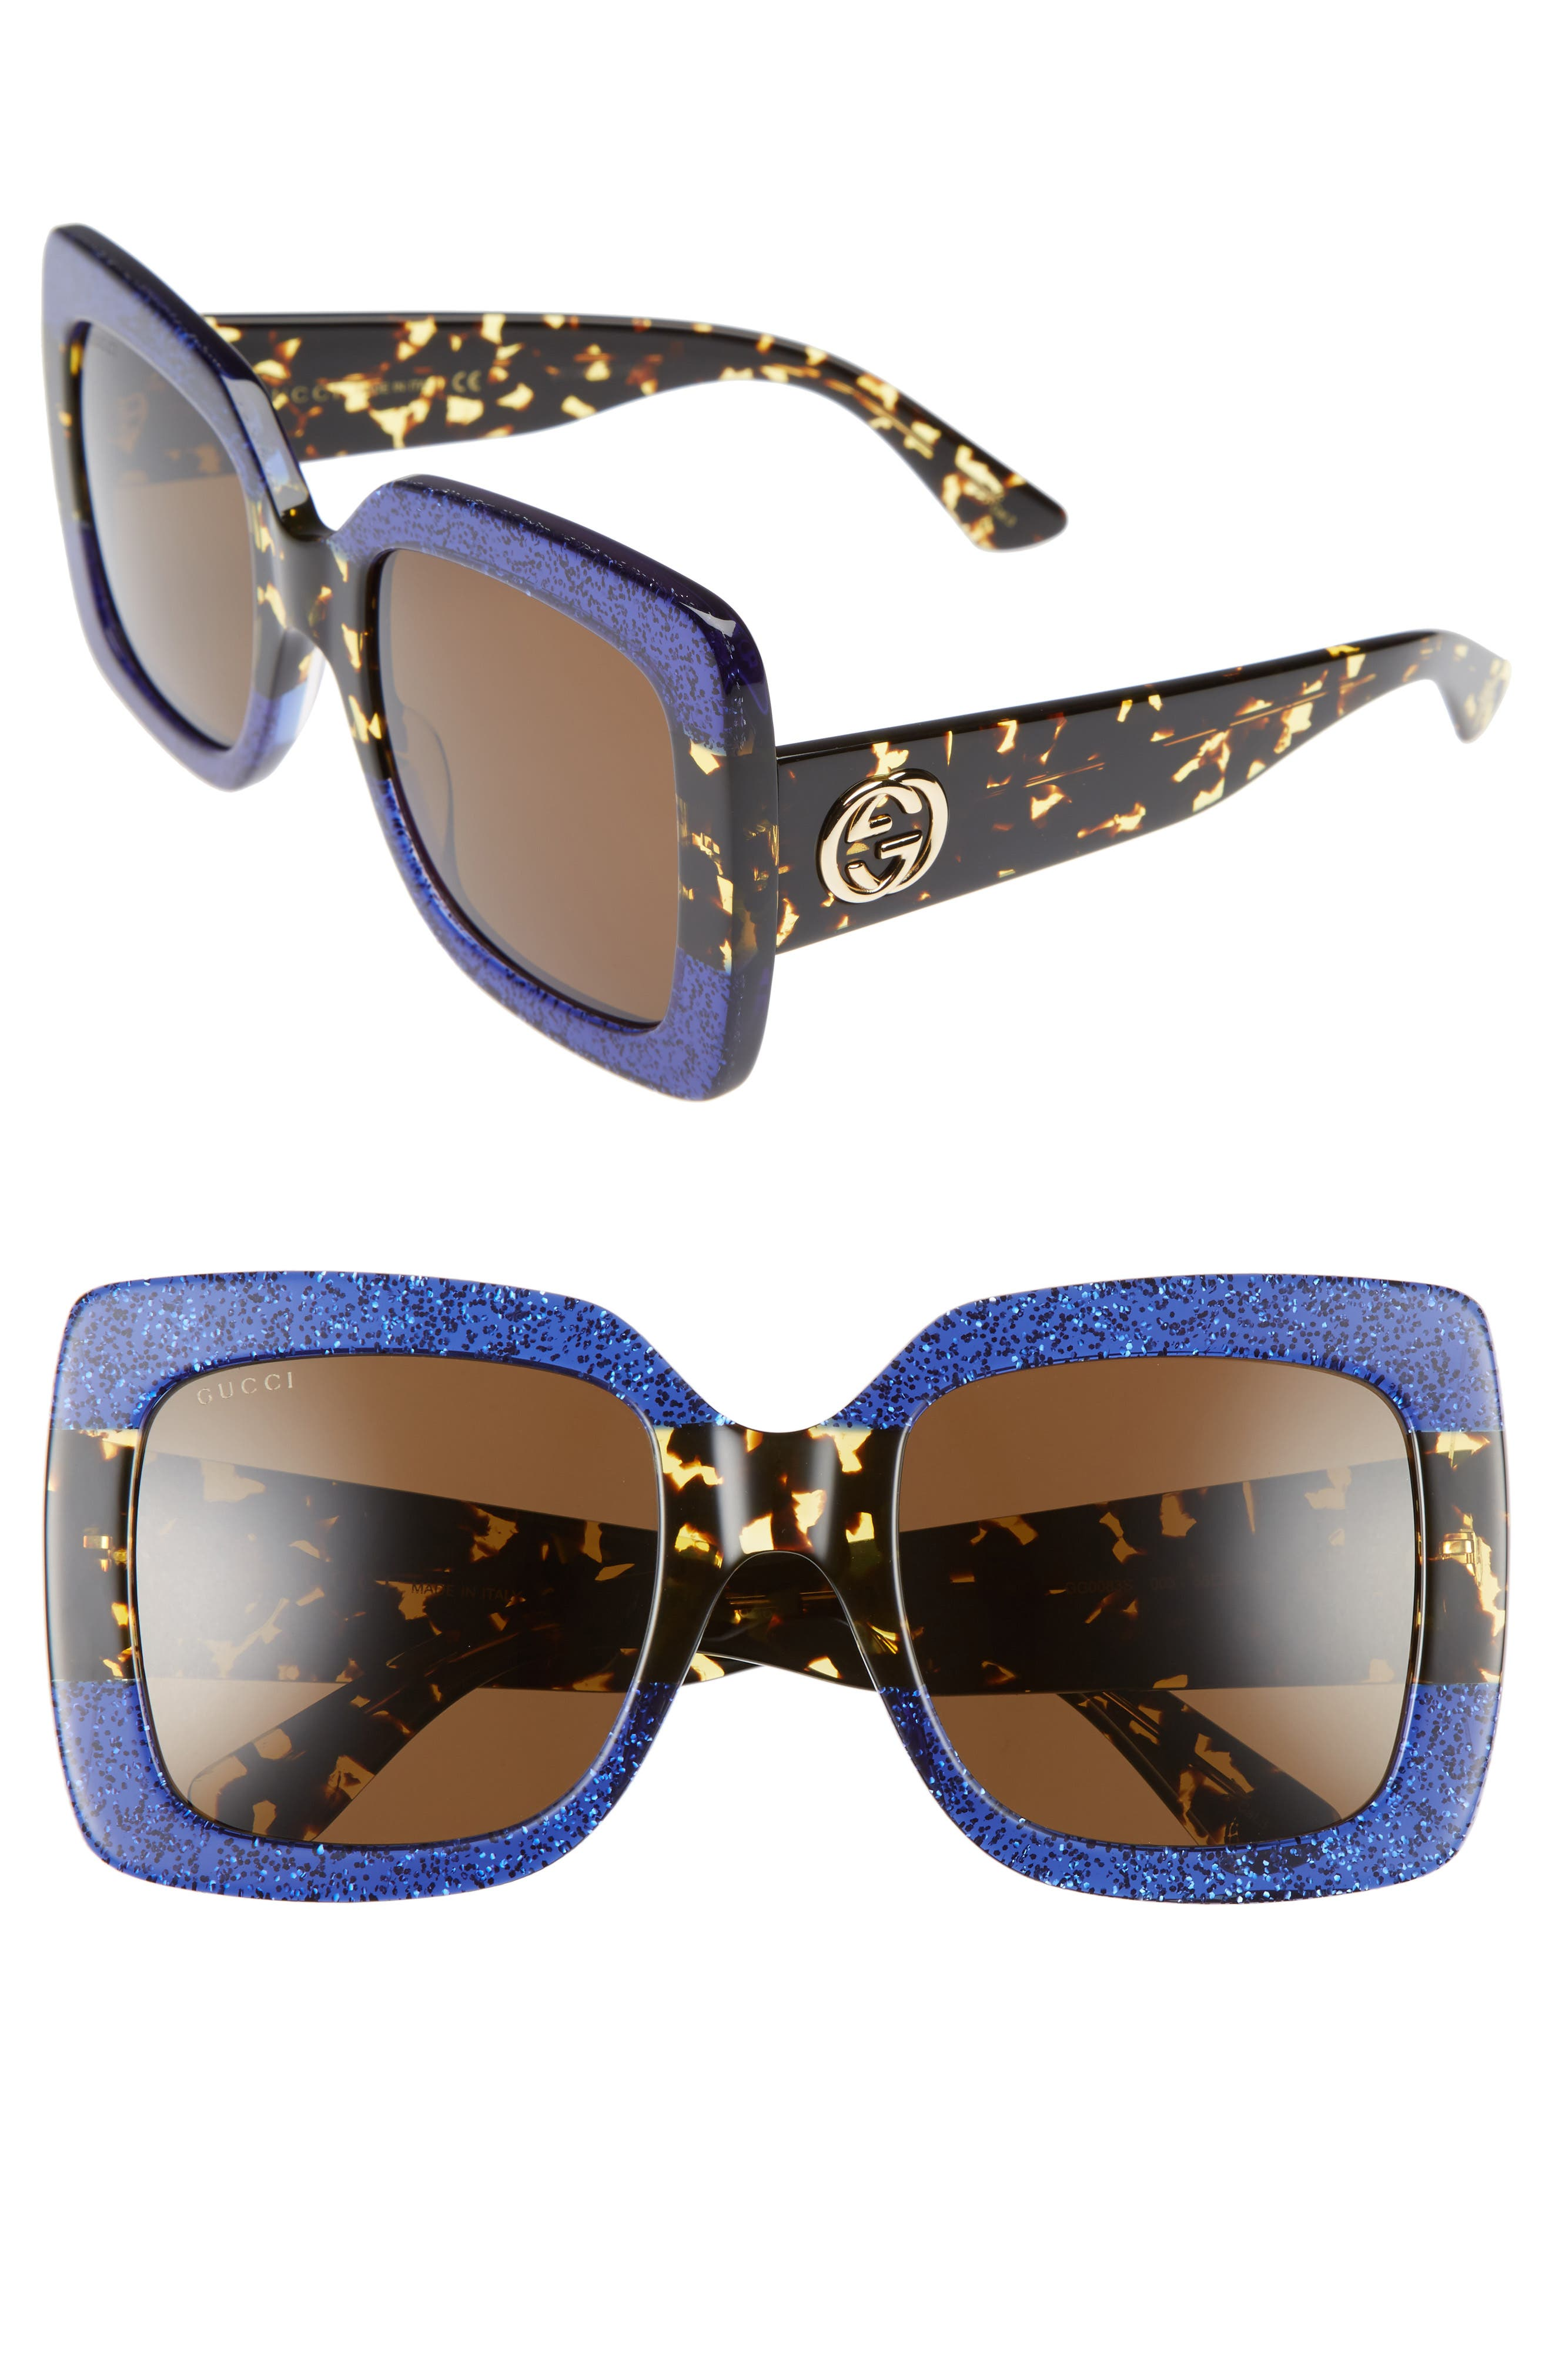 39a8161a71c11 Gucci Women s Sunglasses